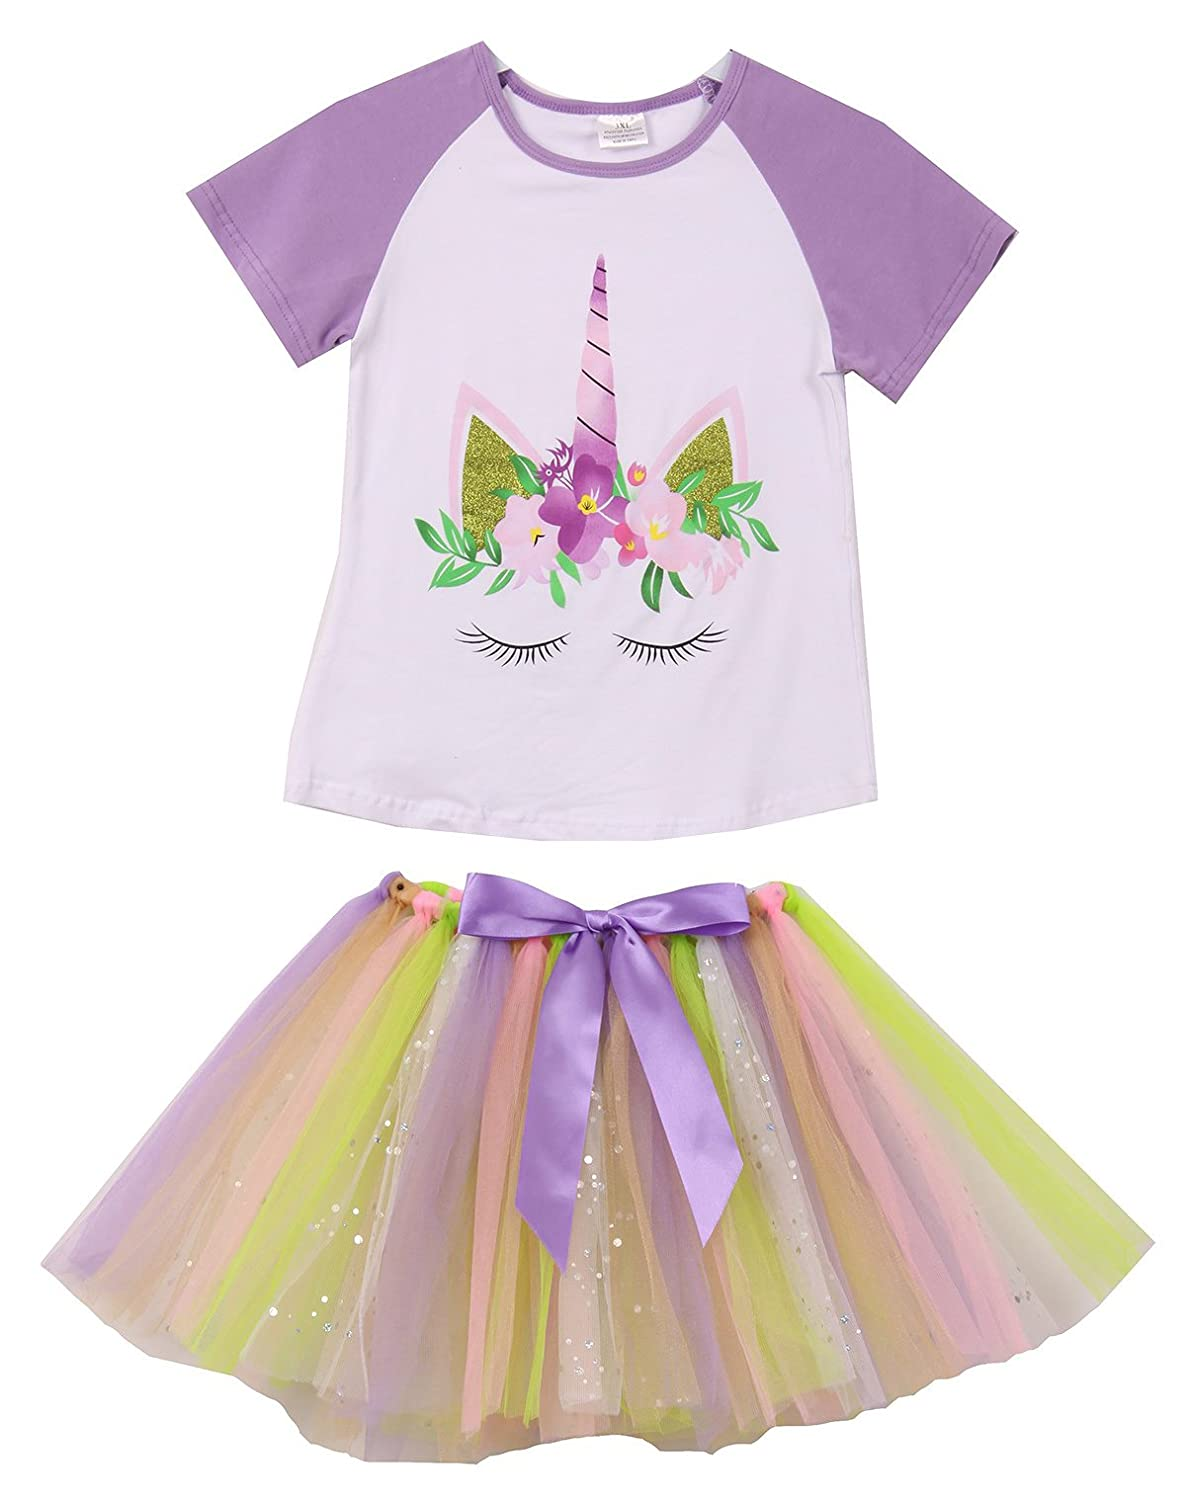 afc052a1f8 2 Piece Girls Clothing top tutu Skirt Set. Comes with Short Sleeve Glitter  Unicorn T-Shirt Top. Tulle Tutu Skirt with Bow. Easily match with leggings  or ...